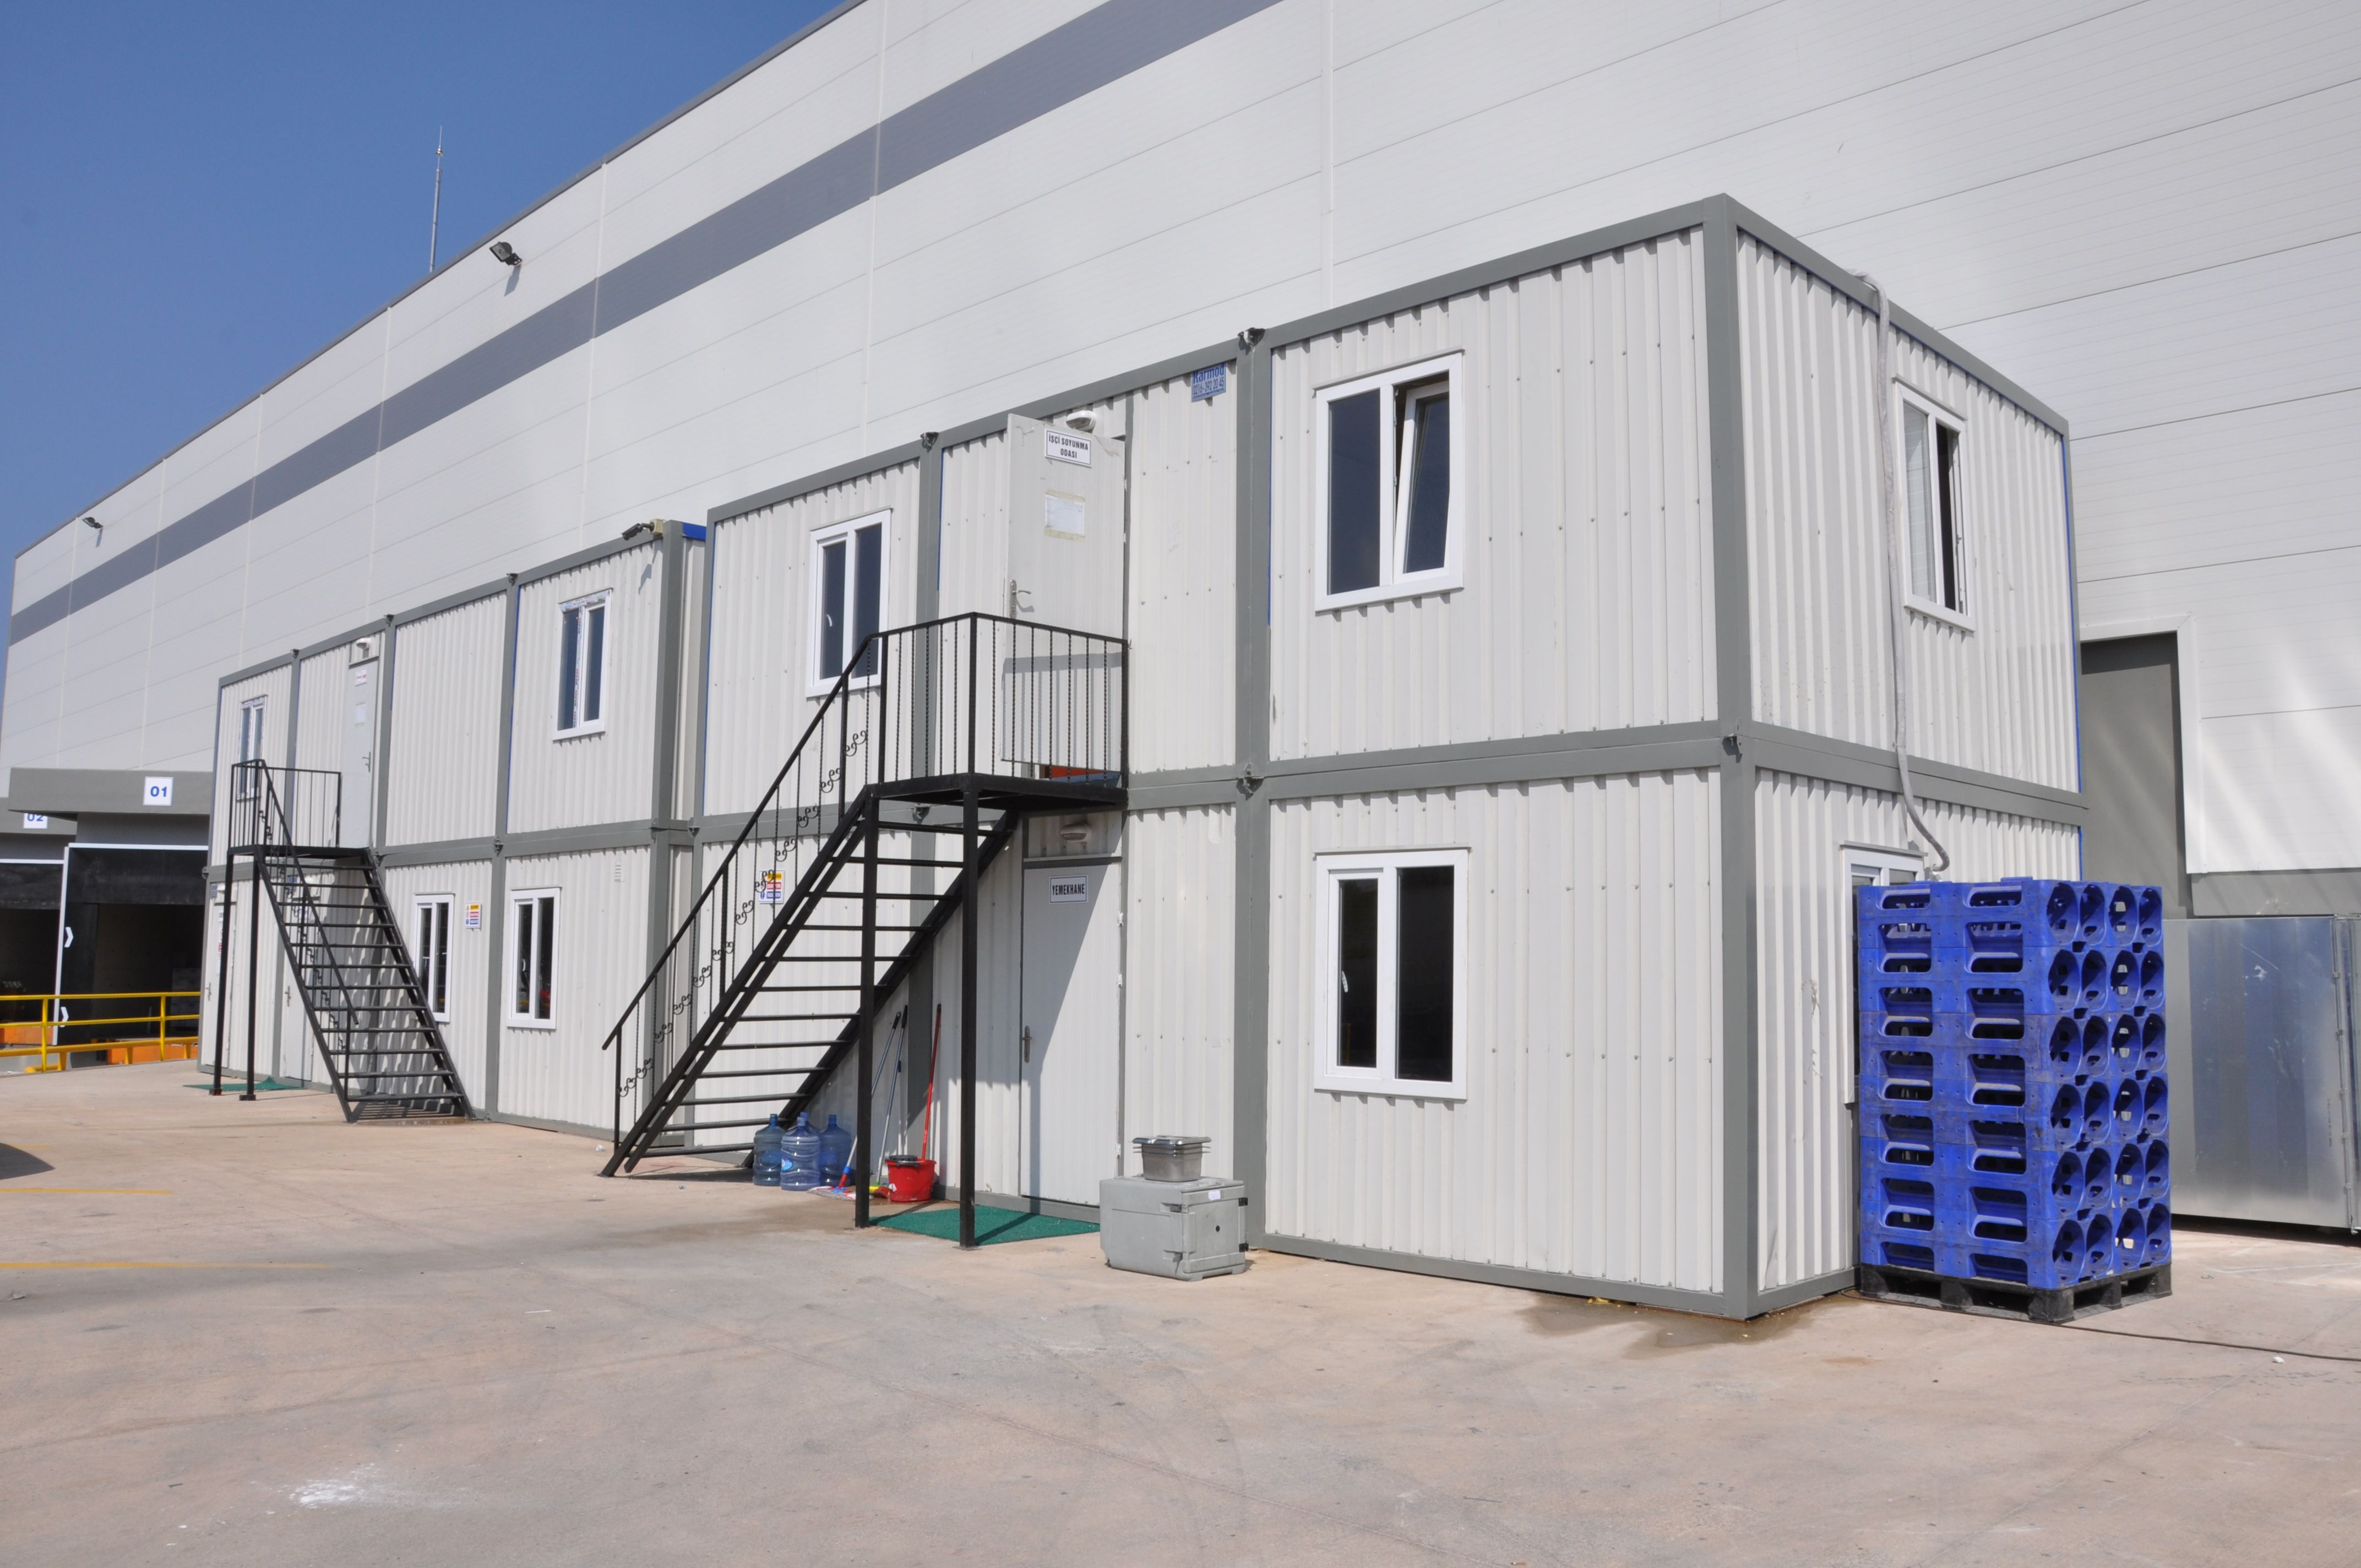 Prefab Buildings, Container Houses, The Building, Benefits Of, Tiny Houses,  House Design, Storage Container Homes, Small Homes, Container Homes